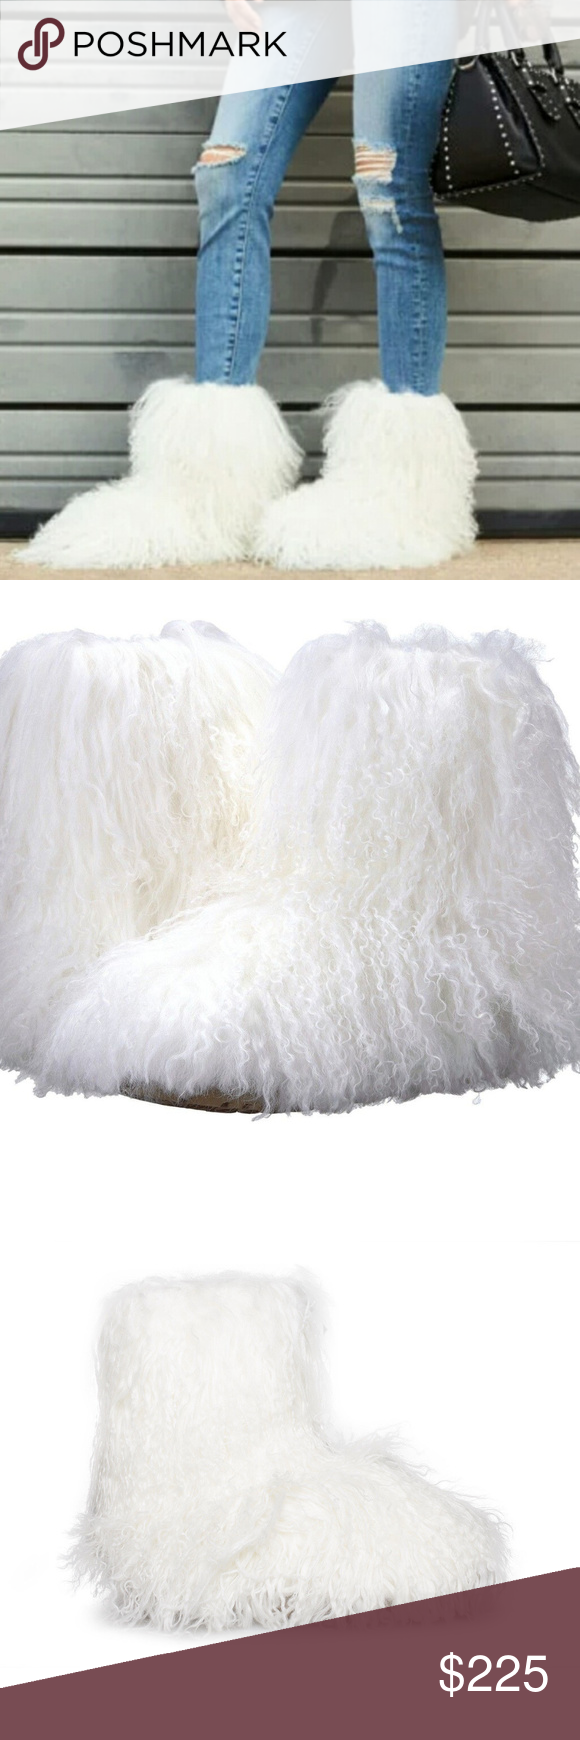 04c3a4e5f3f UGG Fluff Momma Mongolian Shag Boots Brand New with Box The shag ...